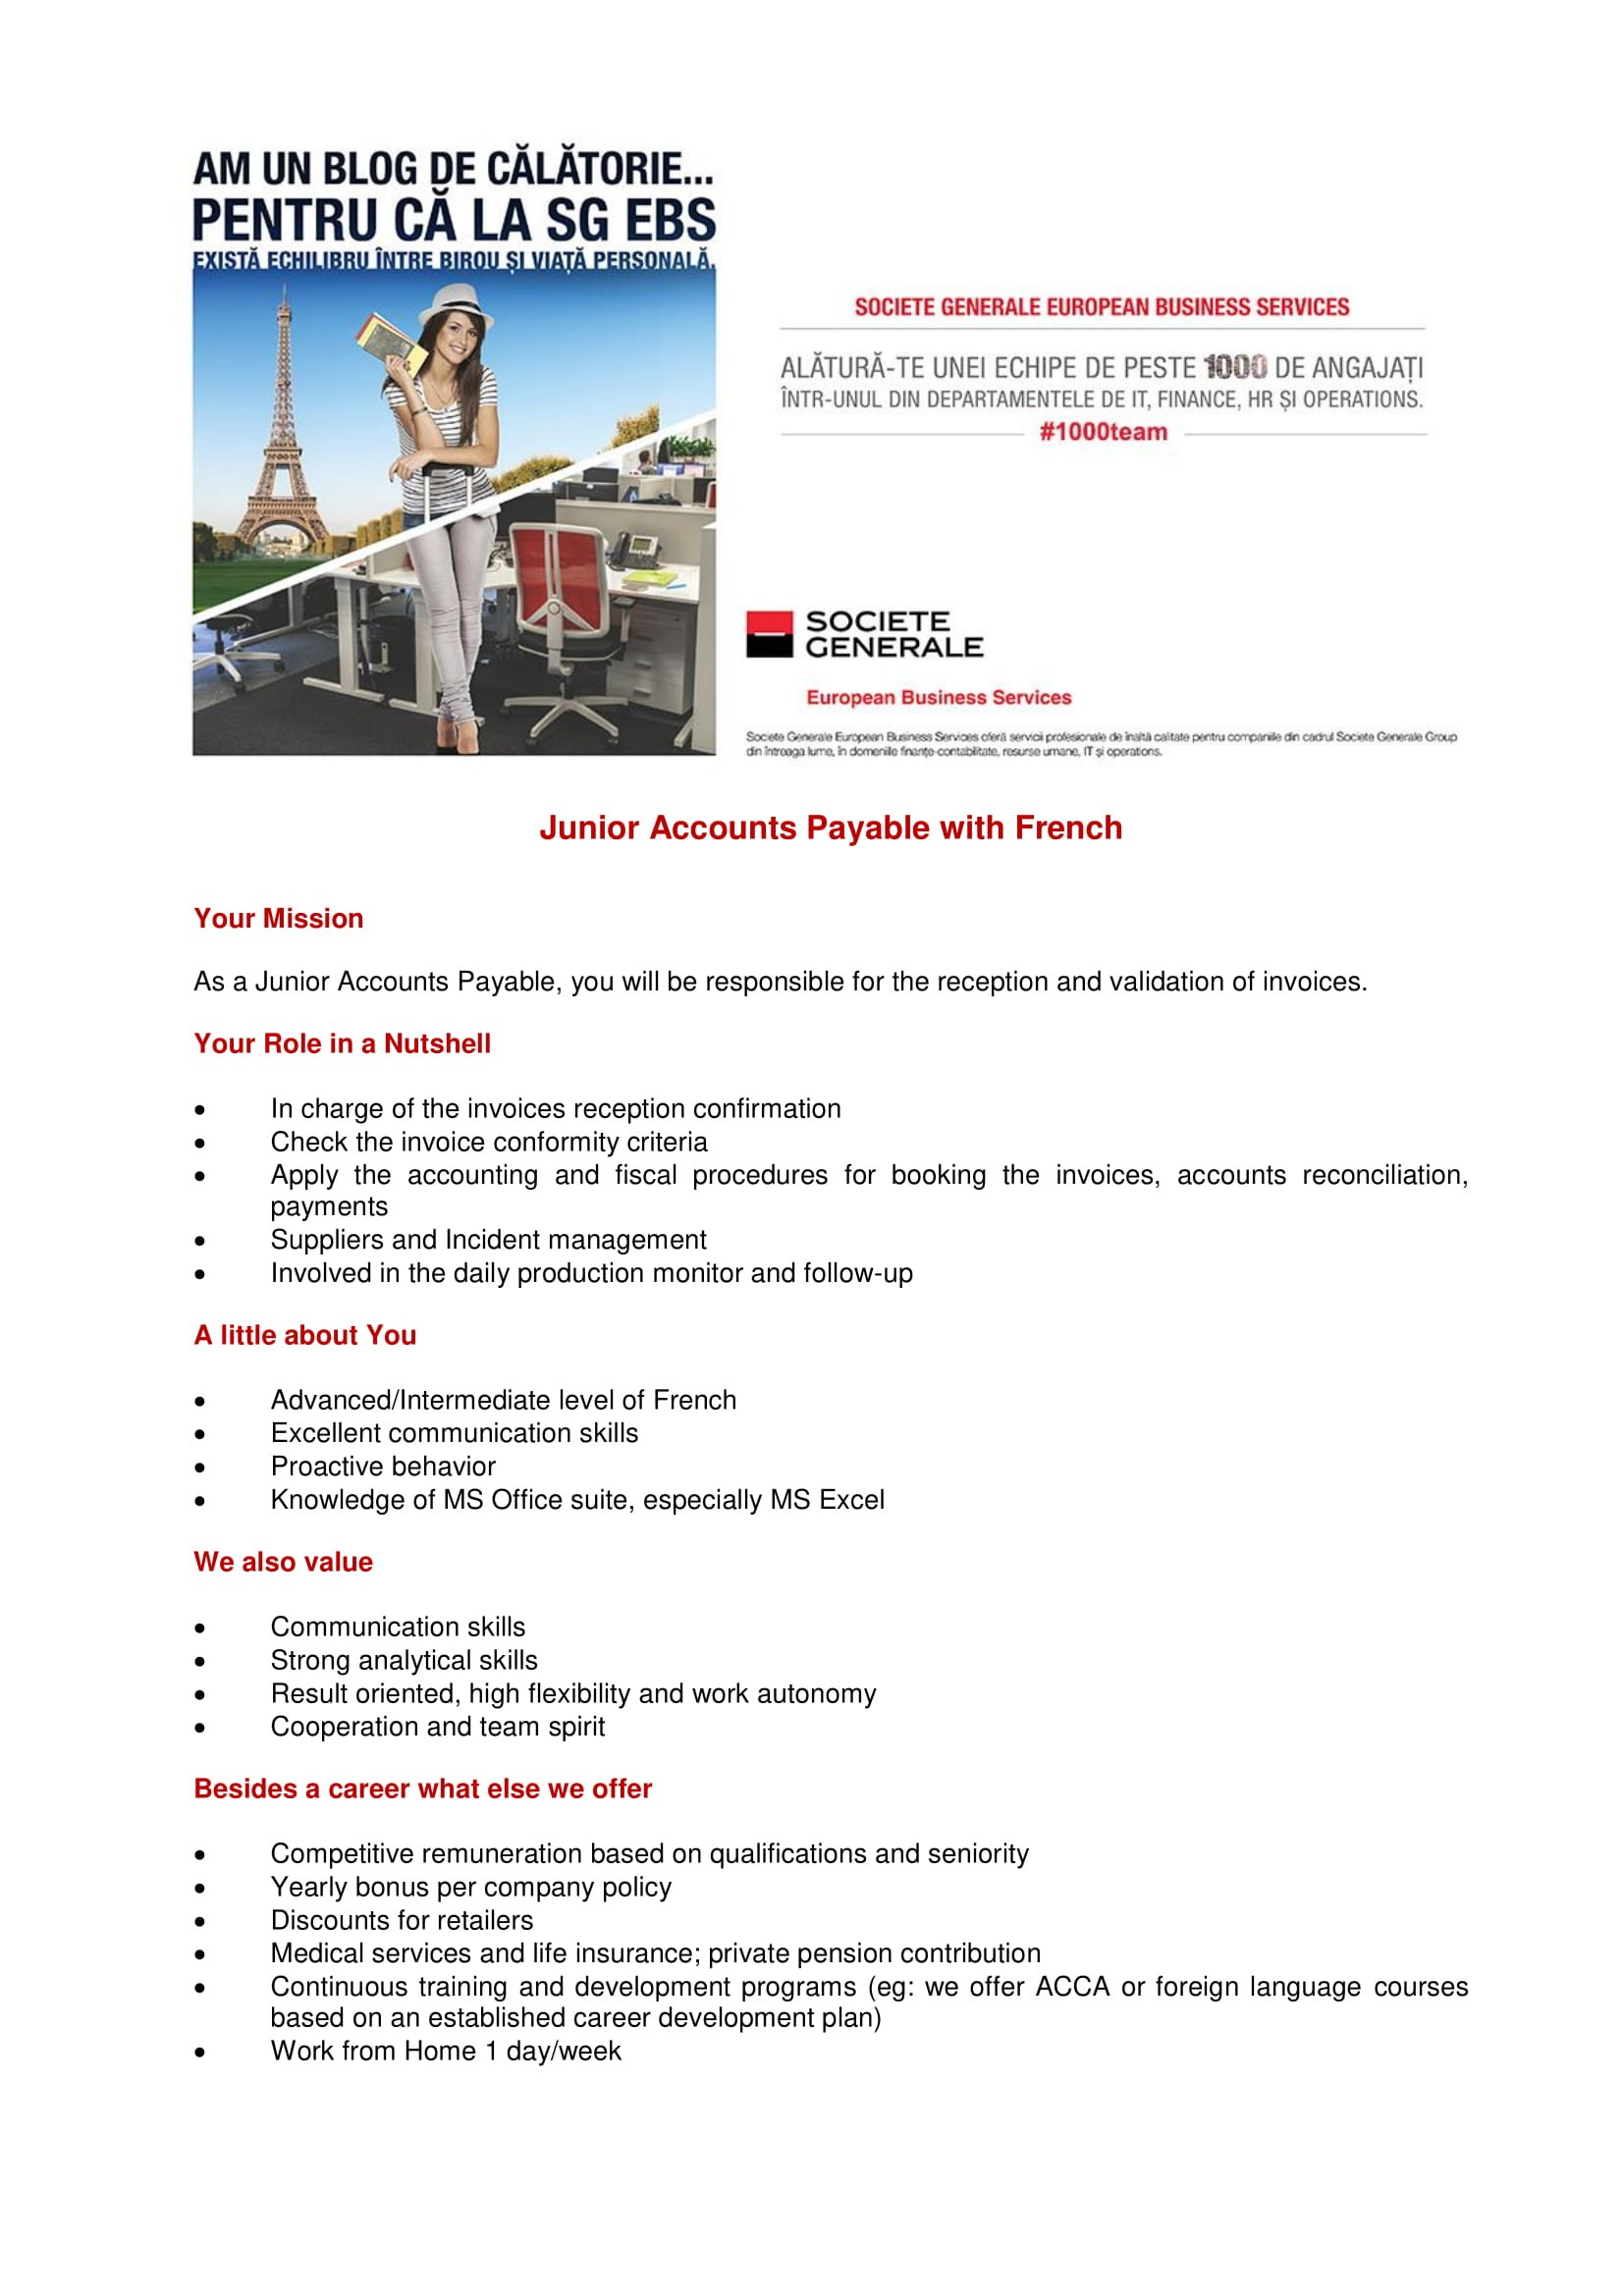 Junior Accounts Payable with French - foto